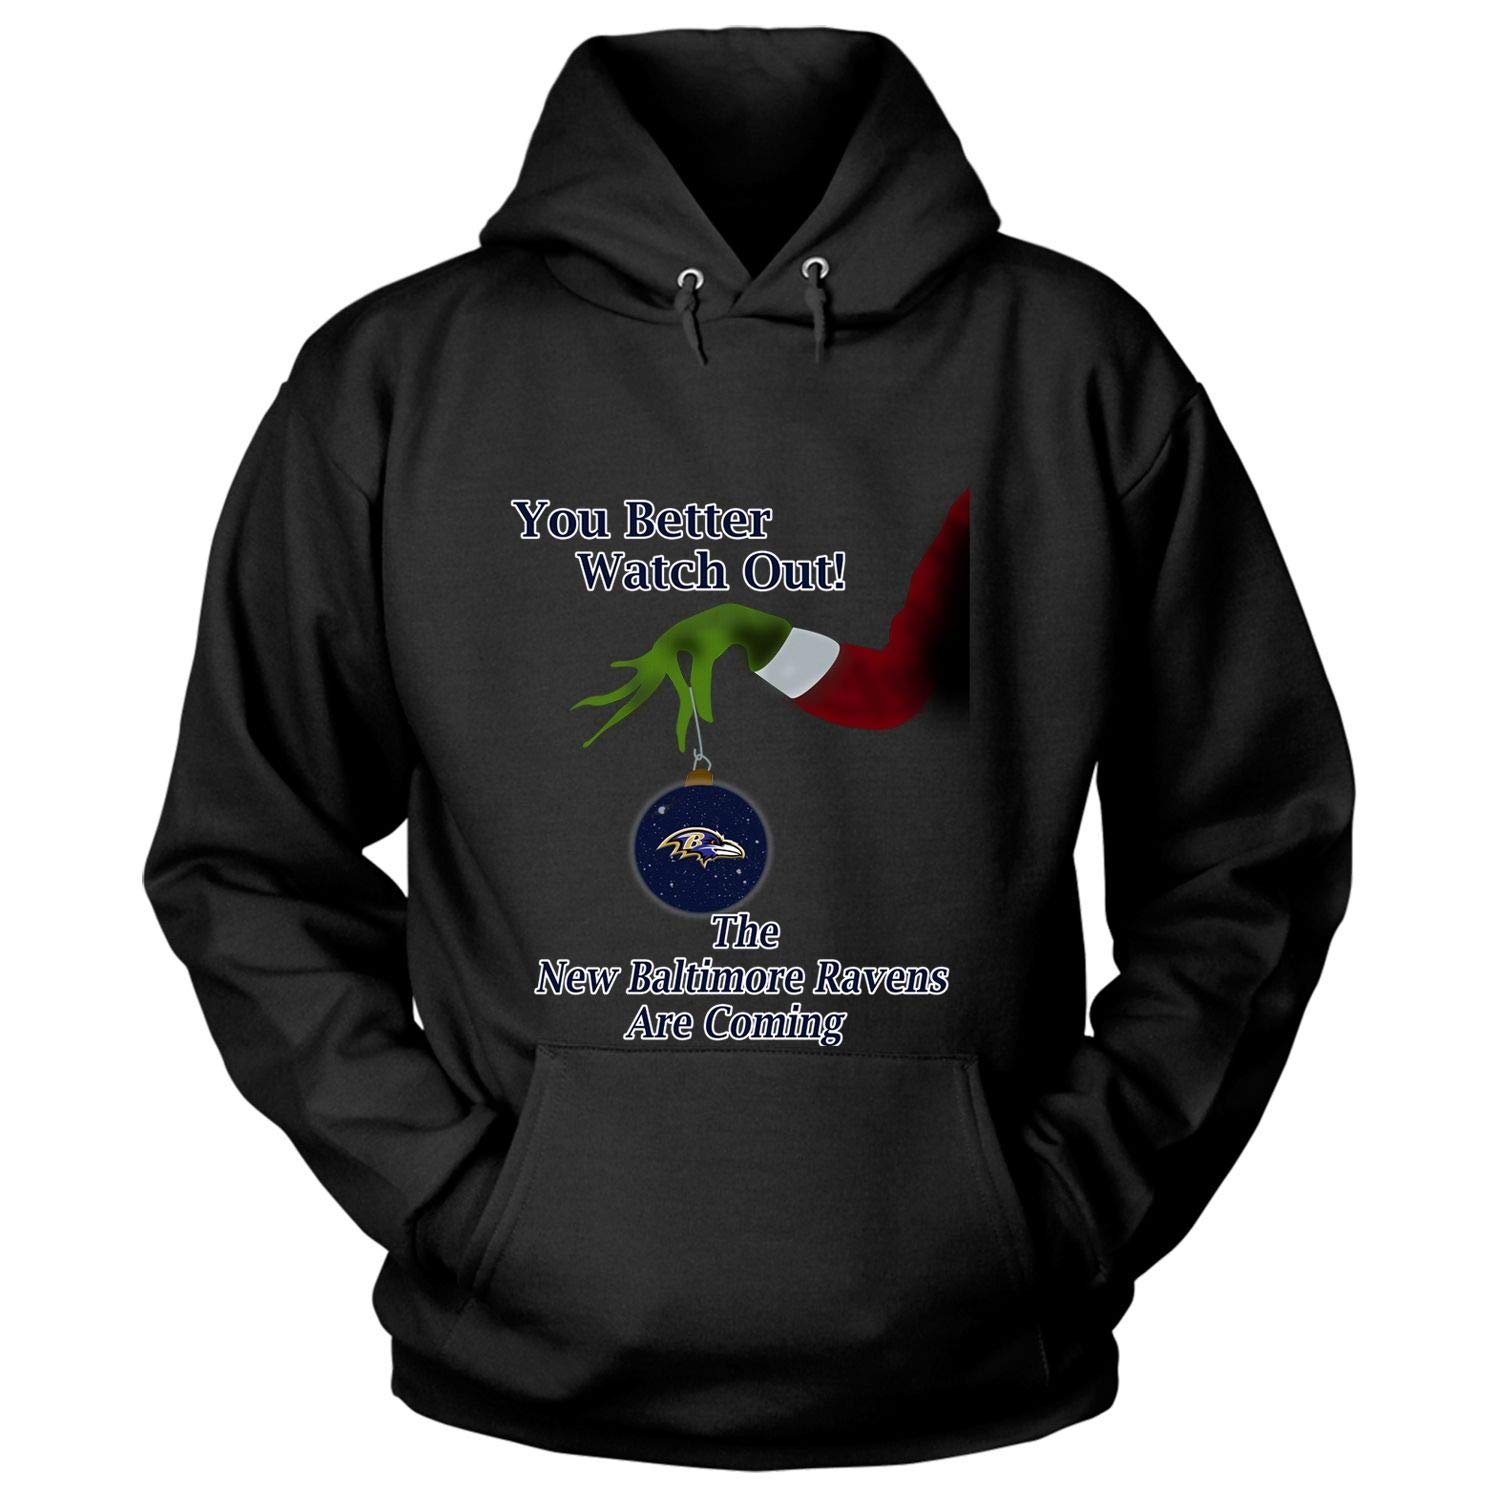 Get Now The Baltimore Ravens are Coming T Shirt Christmas T Shirt – Hoodie